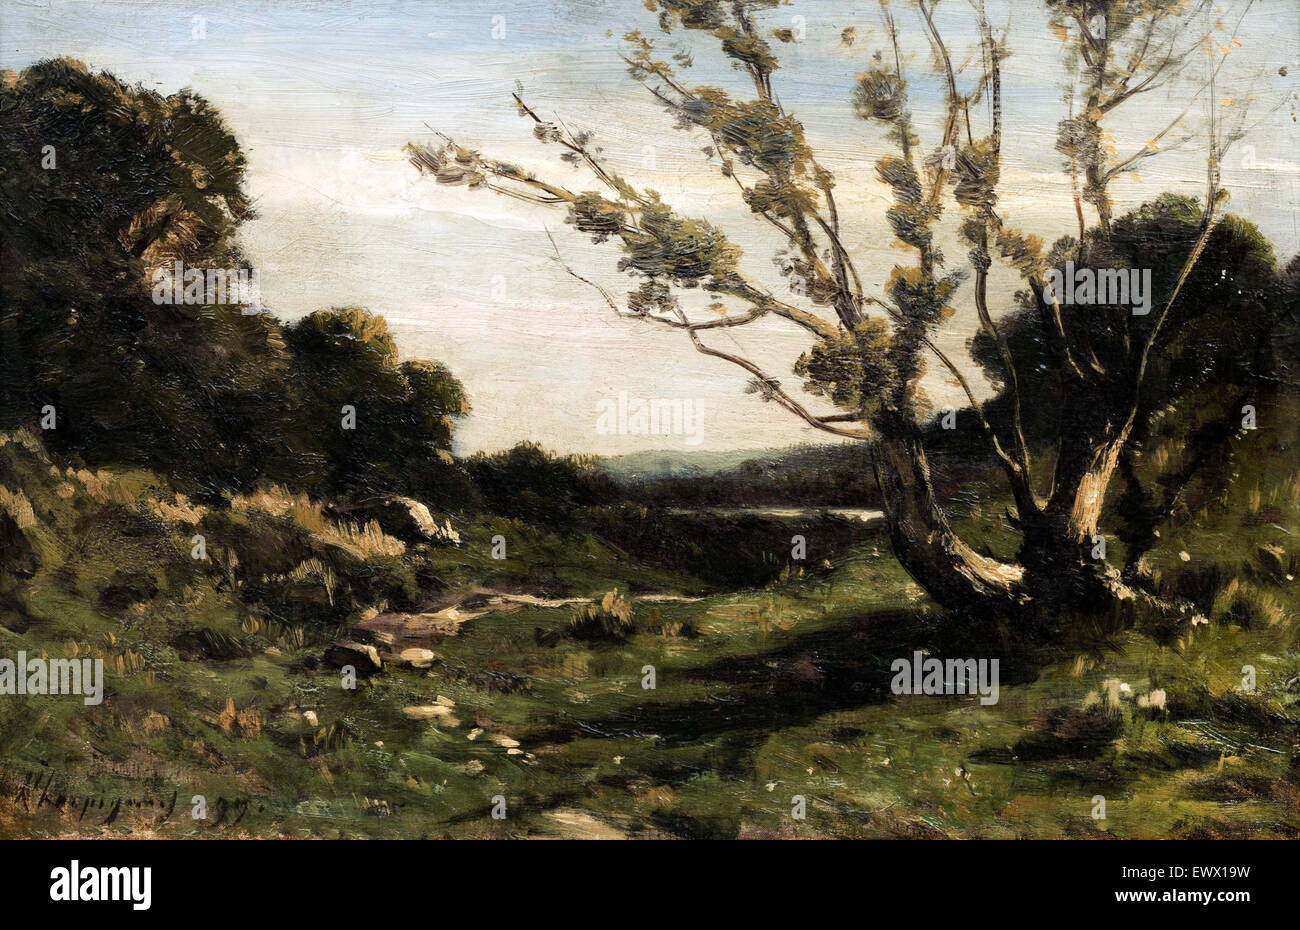 Henri Harpignies, Morning in the Nievre 1877 Oil on canvas. Art Gallery of New South Wales, Sydney, Australia. - Stock Image